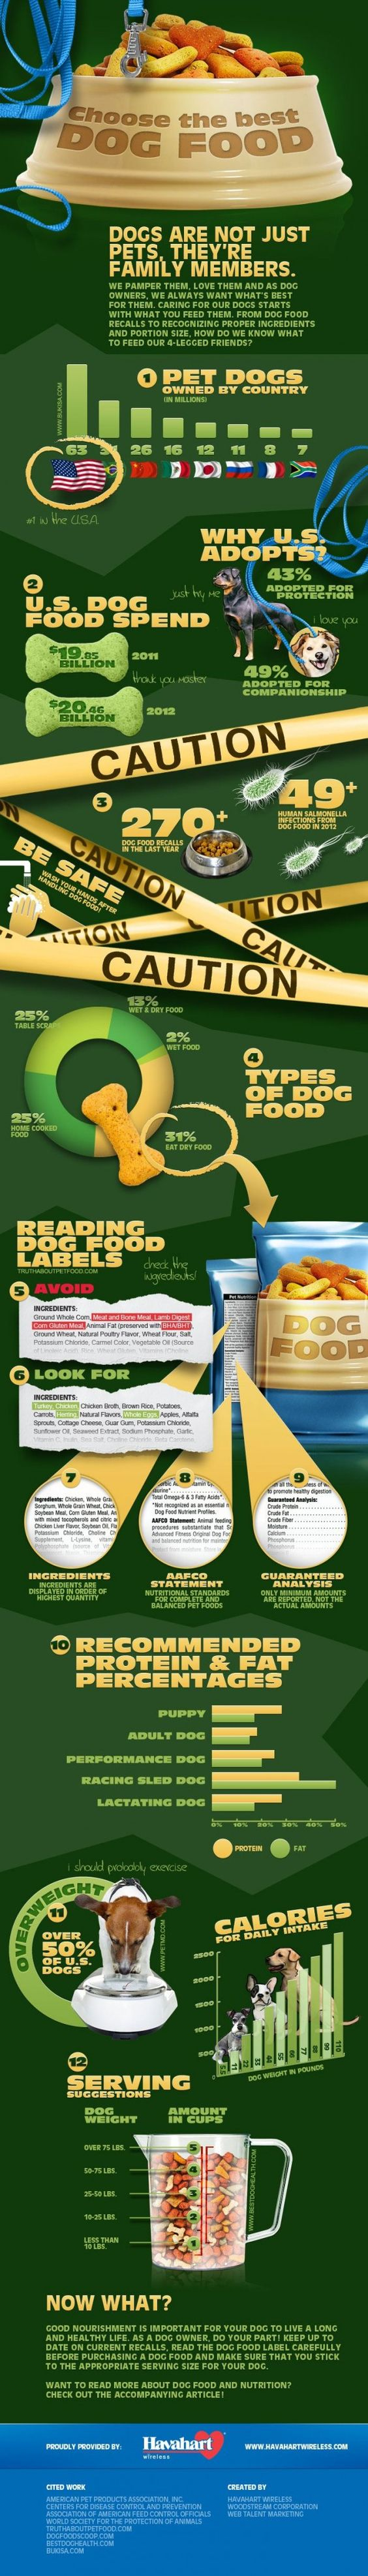 #INFOGRAPHIC: CHOOSE THE BEST DOG FOOD